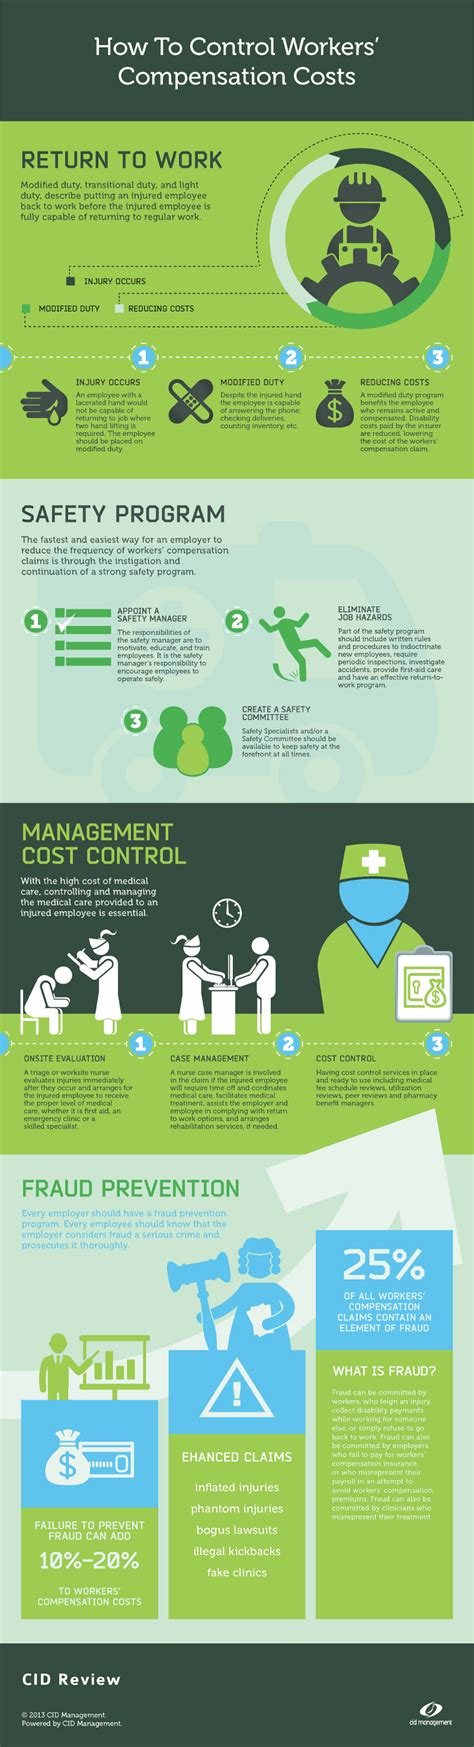 7 Plan Companies by Health Tips 7 Best Health And Safety Management Plans For